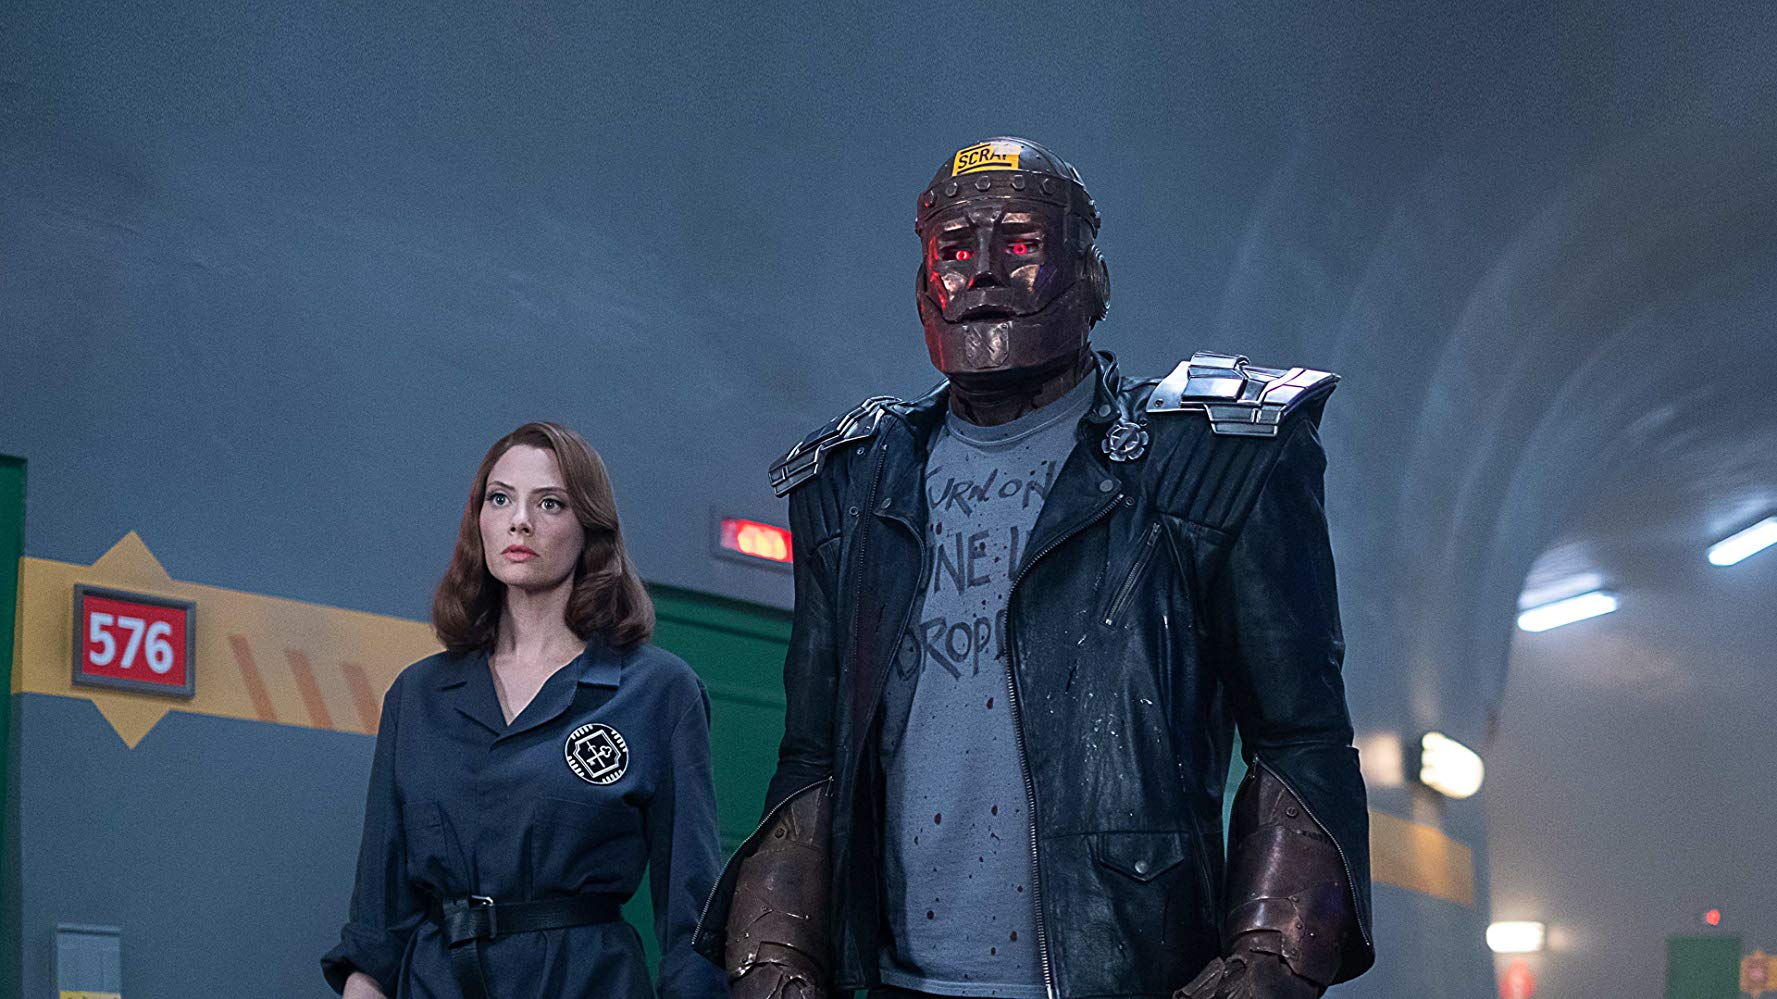 [News] Doom Patrol: The Complete First Season Coming to Blu-ray & DVD